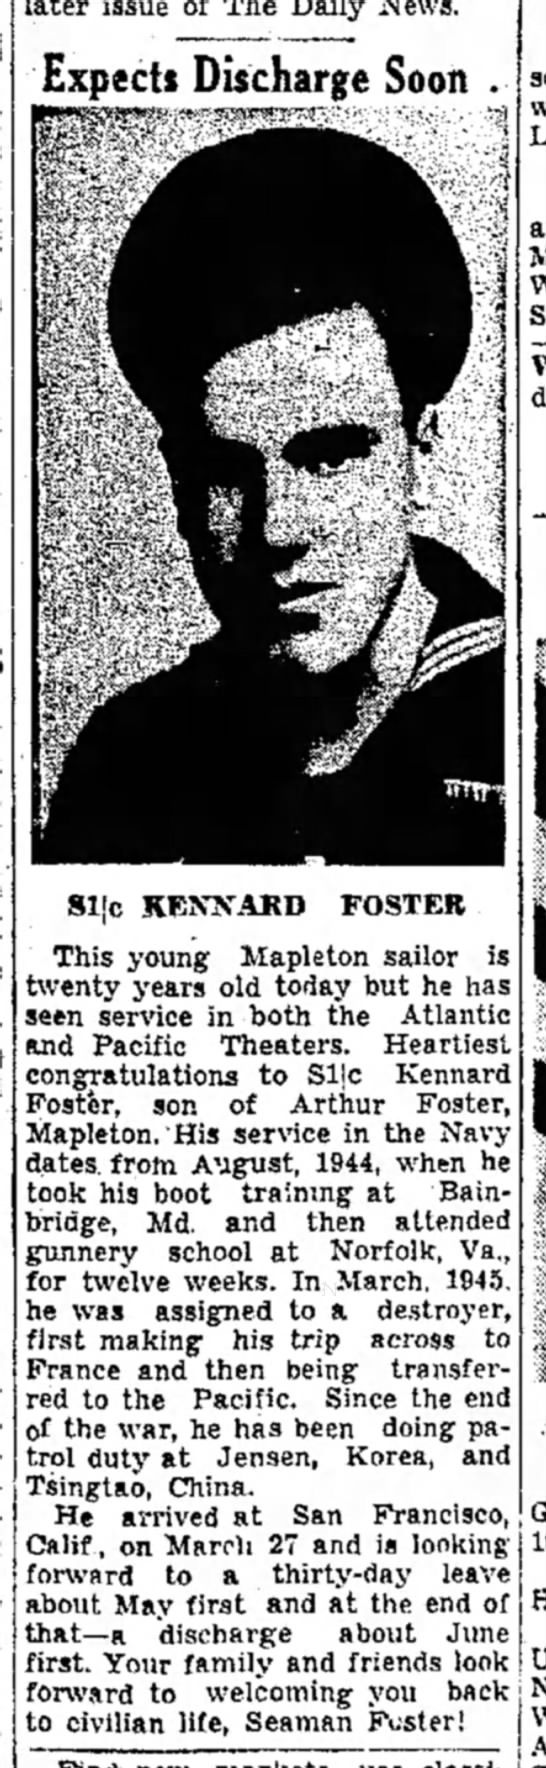 Kennard Foster-Navy-TDN-p.8-10 Apr 1946